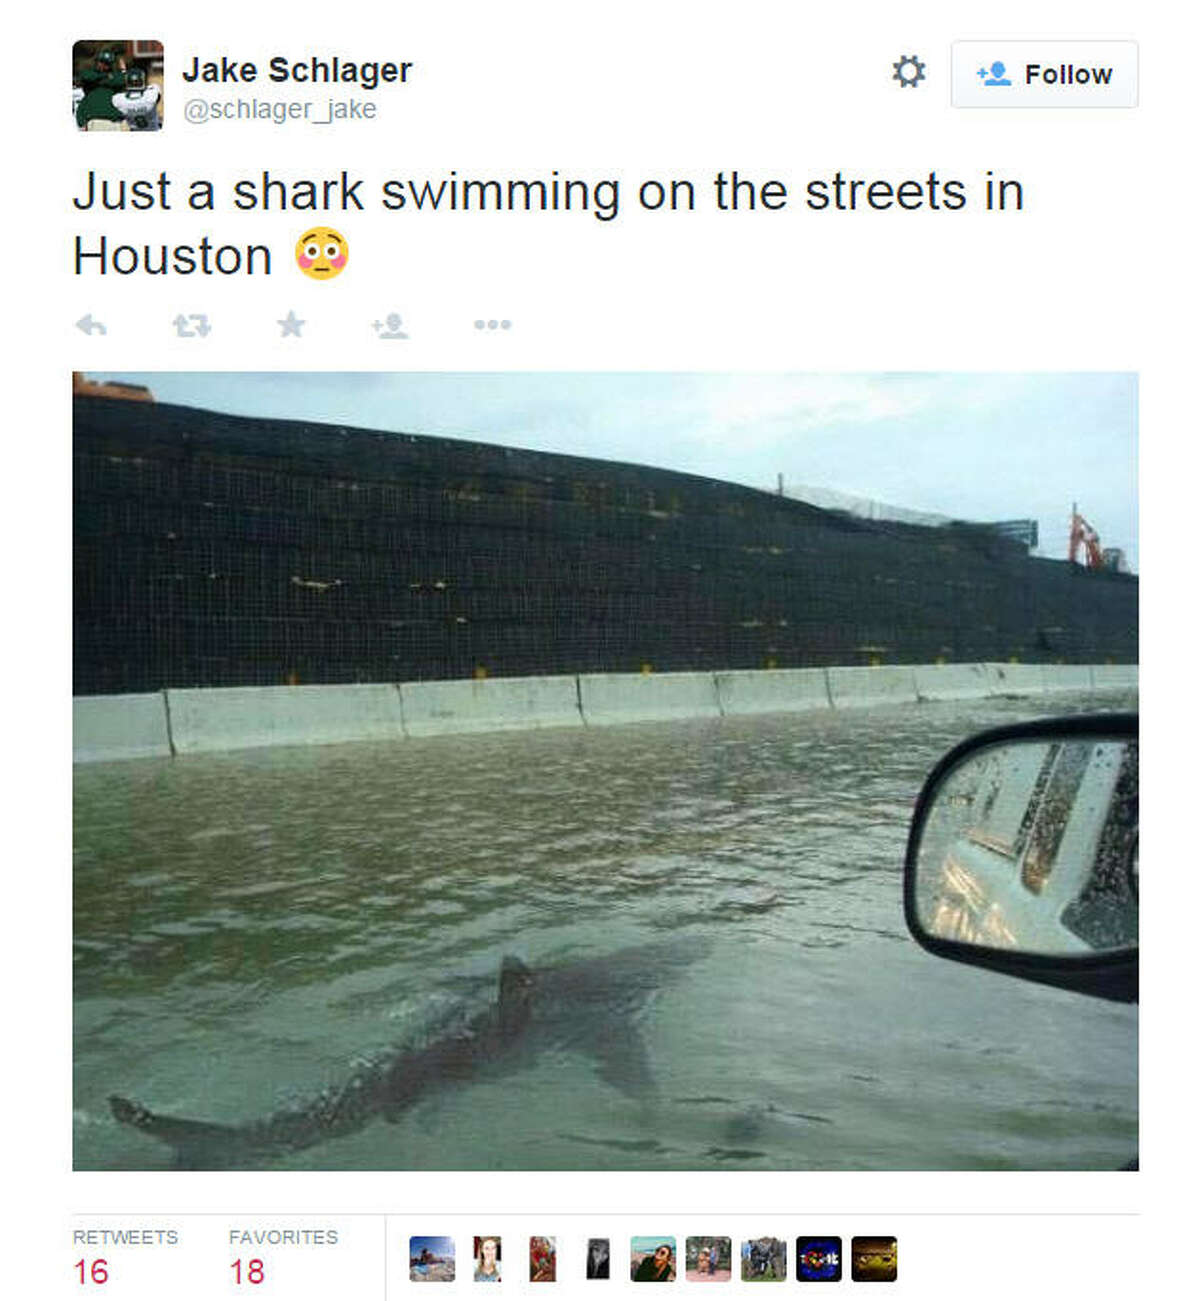 Highway sharks No a shark didn't join Houstonians on their morning commute during the Memorial Day flooding. The hoax dates back to Hurricane Irene, and involves a shark photoshopped from a 2005 image.